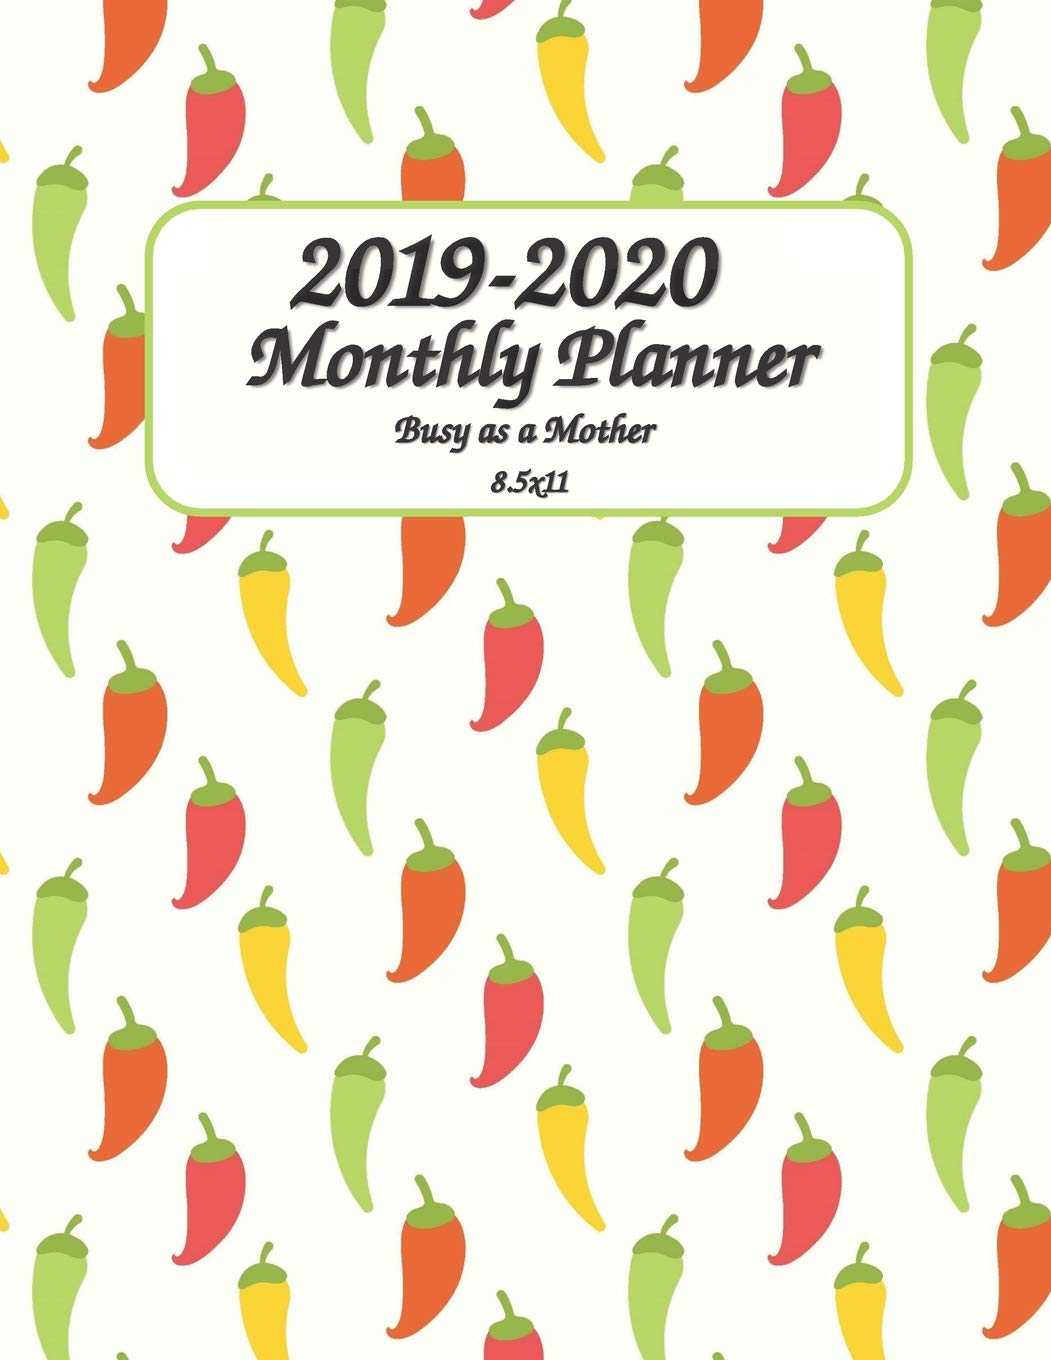 2019-2020 Busy as a Mother Monthly Planner 8.5x11: 24 Months ...